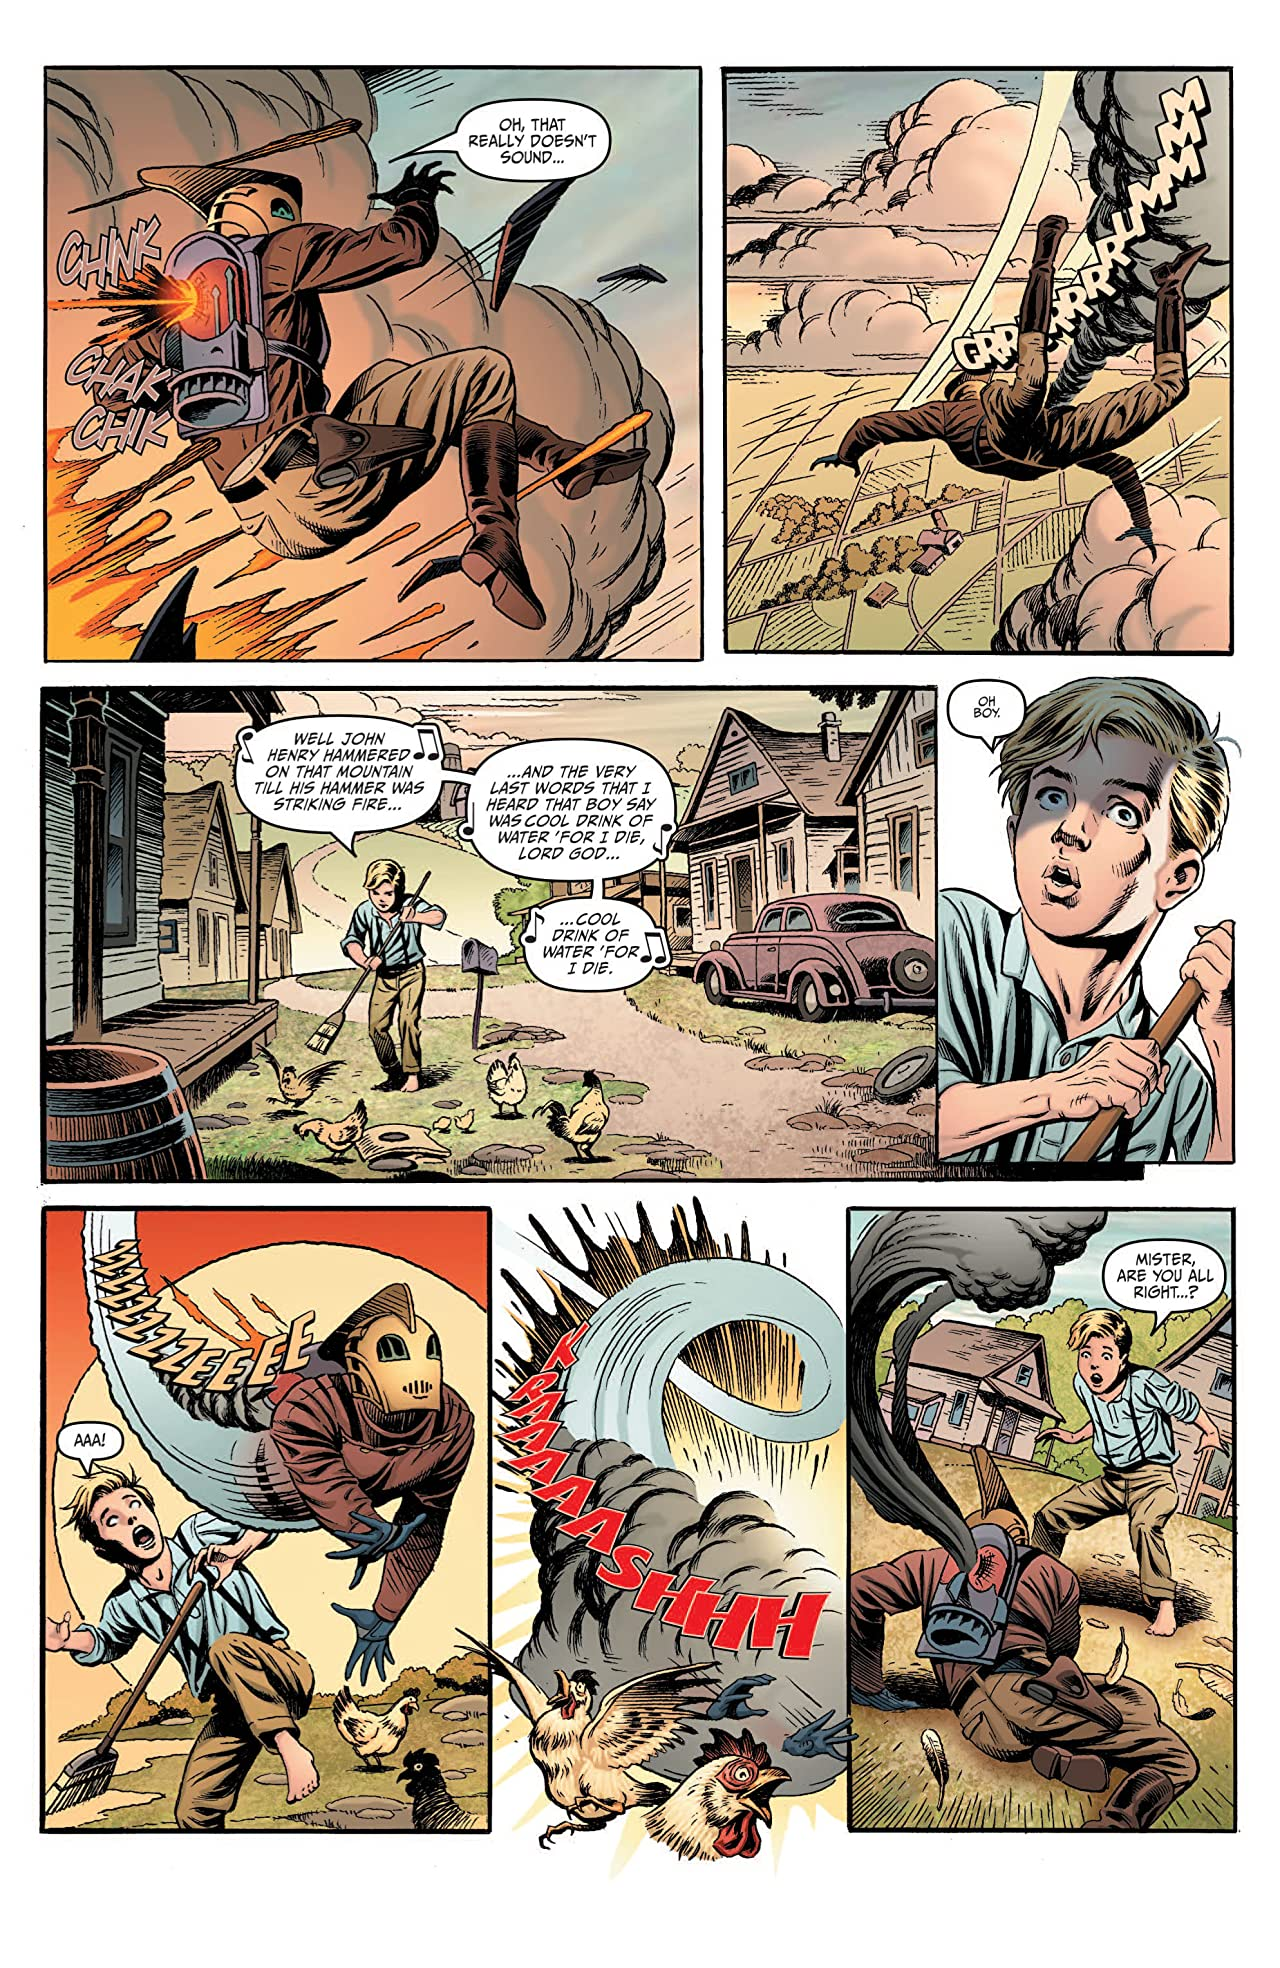 Rocketeer Adventures 2 #1 (of 4)